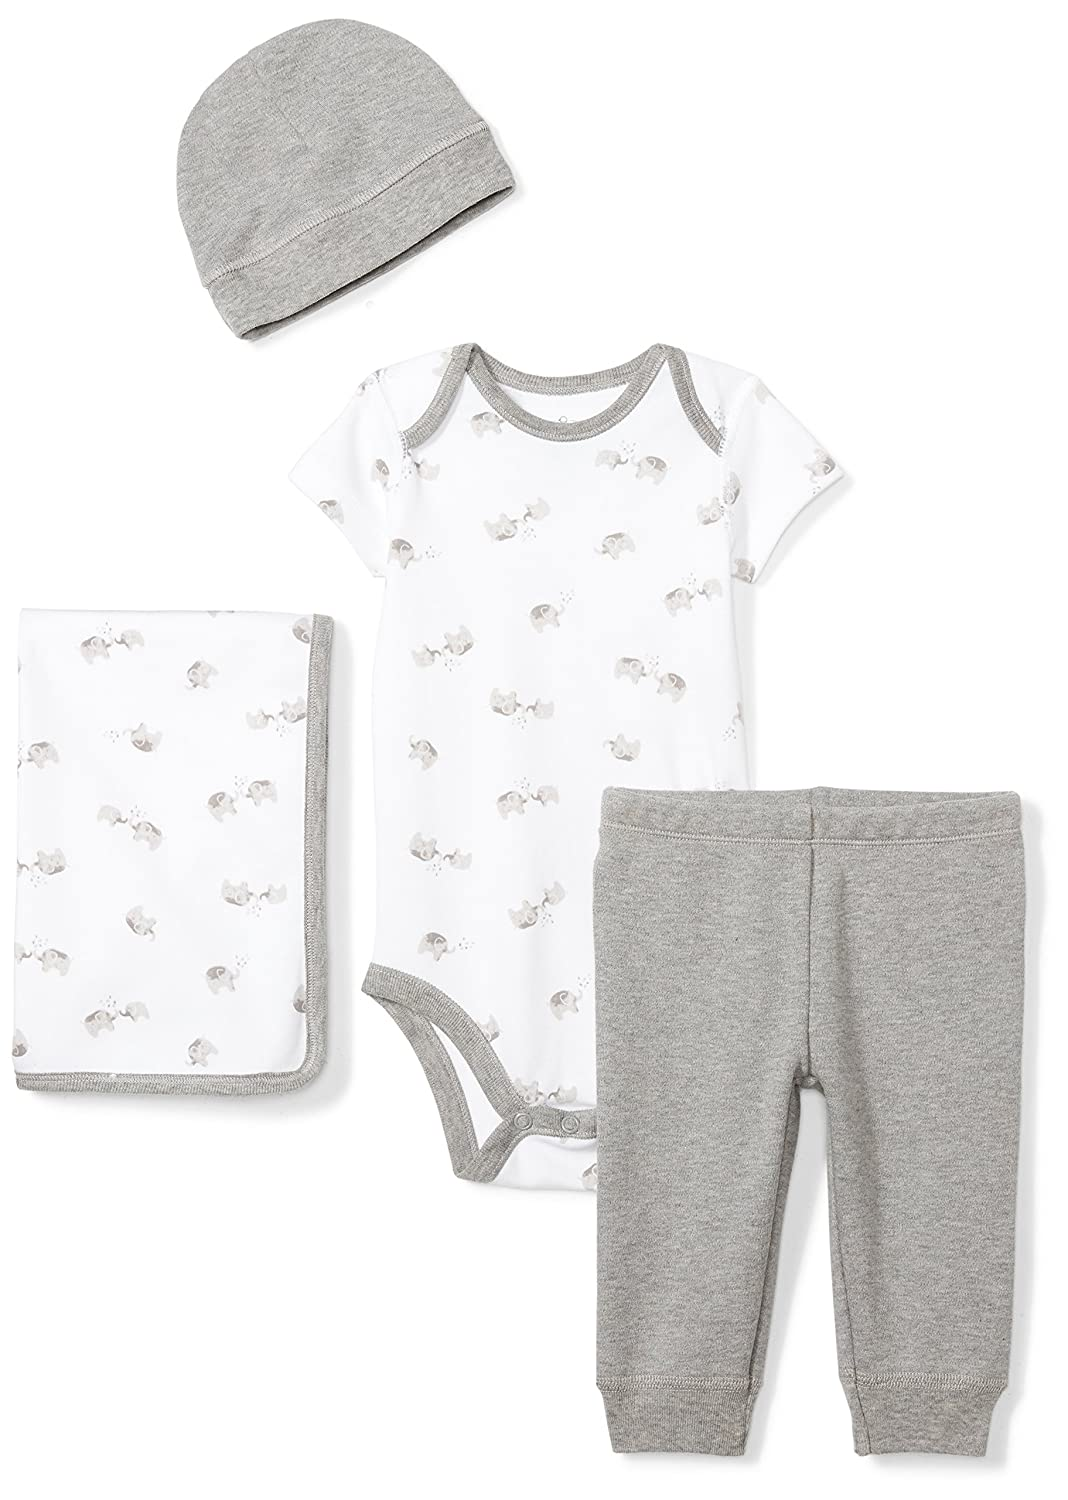 Moon and Back Unisex-Baby Infant 4-Piece Organic Gift Set GFT5-4PC-PDAYSET